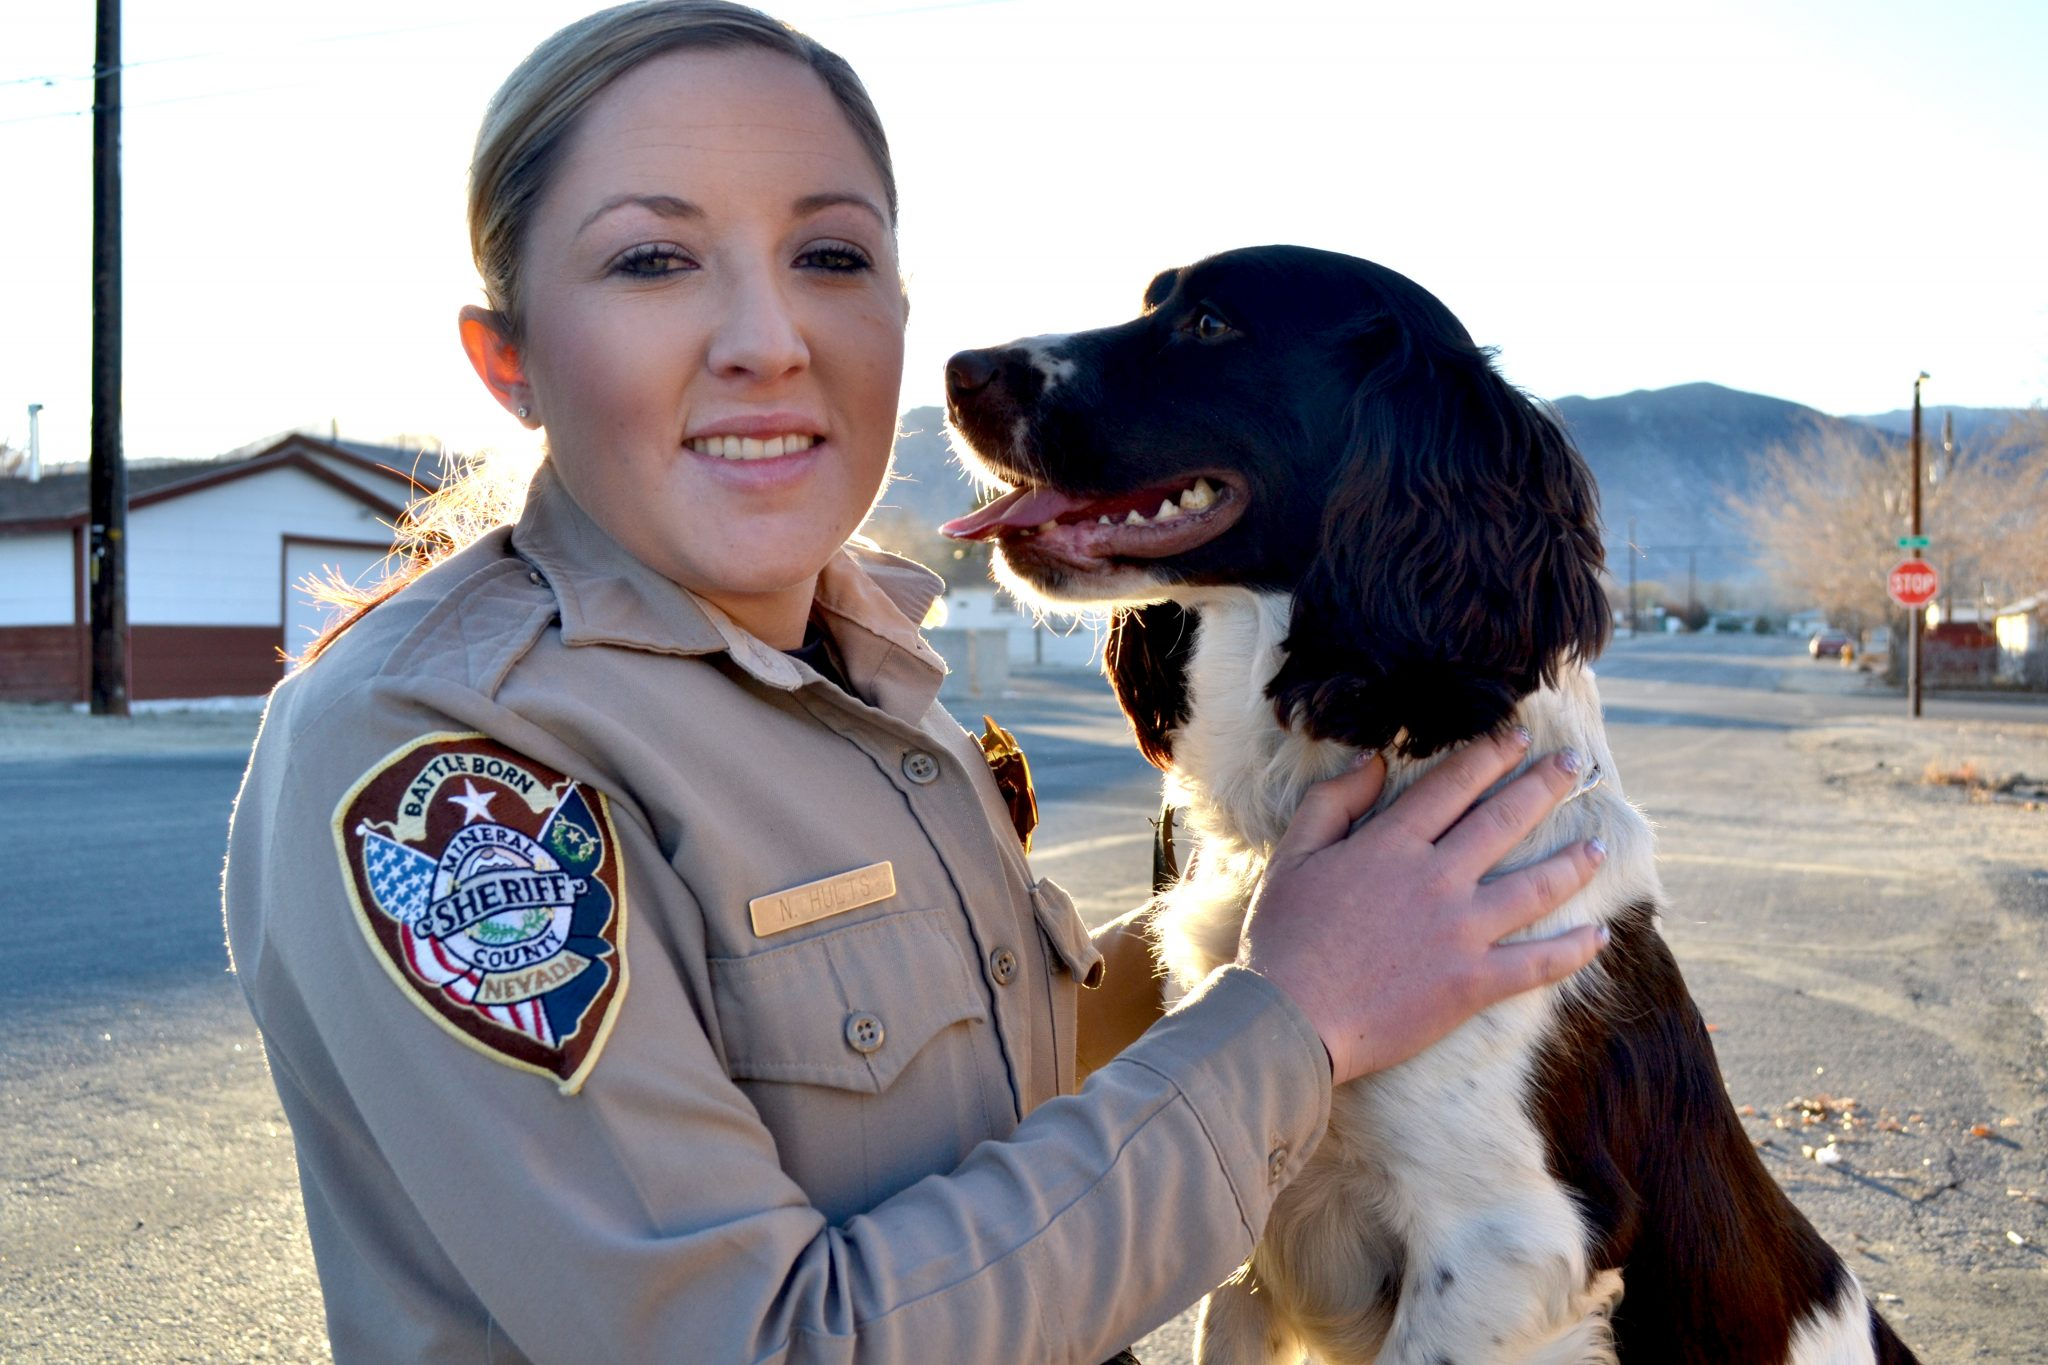 Jake the Drug Dog crucial to law enforcement effort